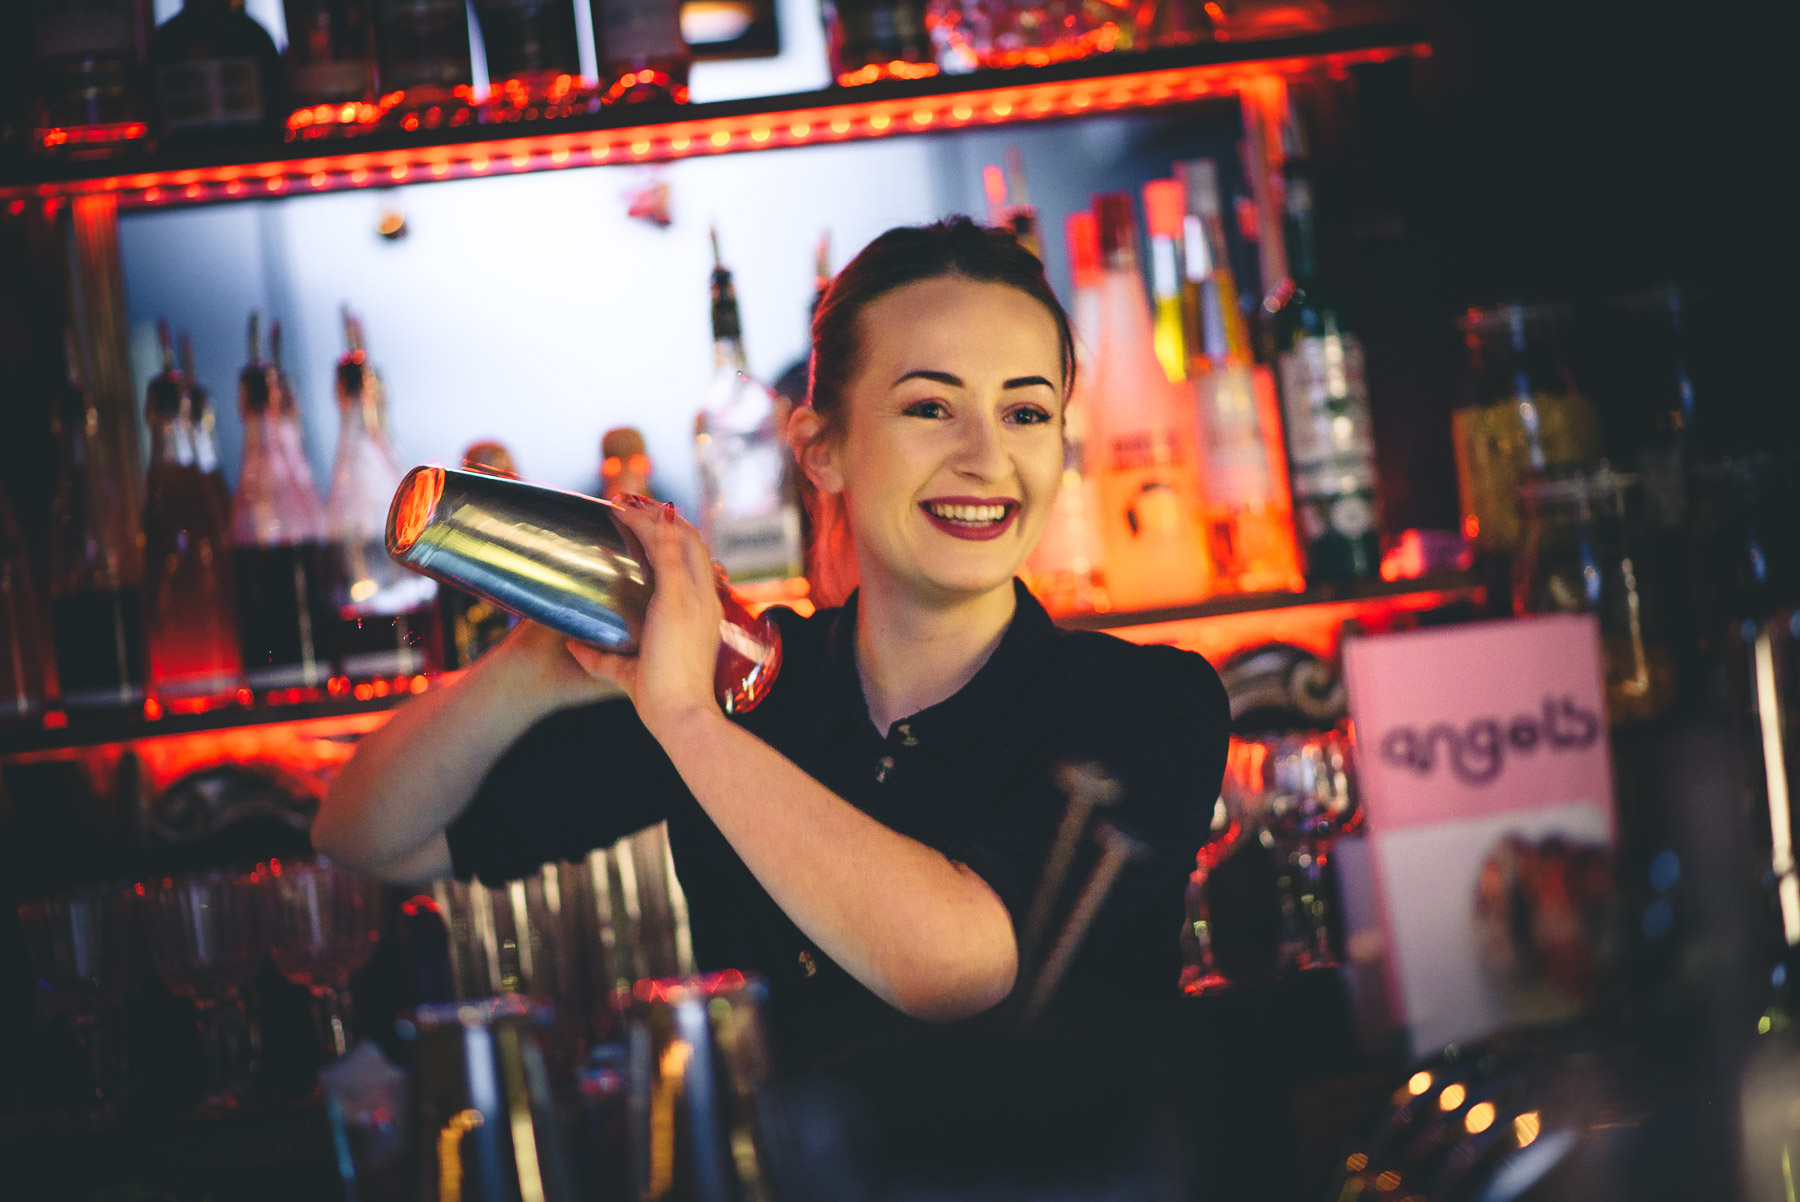 Angels cocktail bar Oxford 15.12.2018-60.jpg